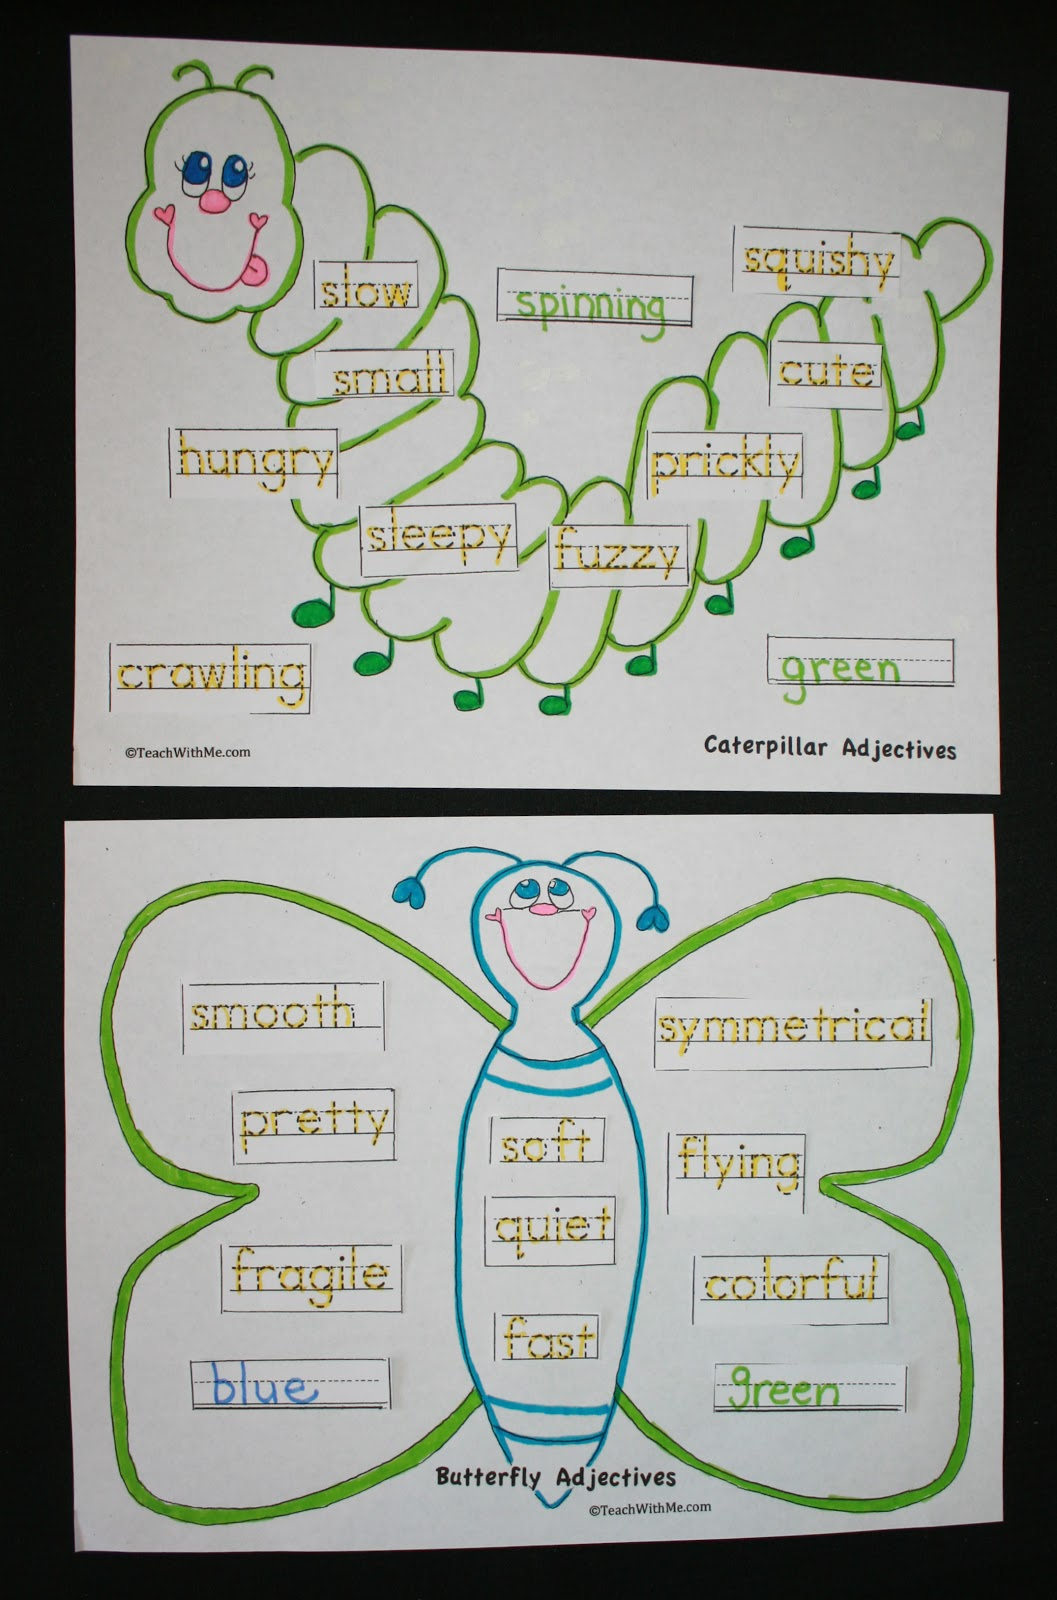 Caterpillar And Butterfly Adjectives